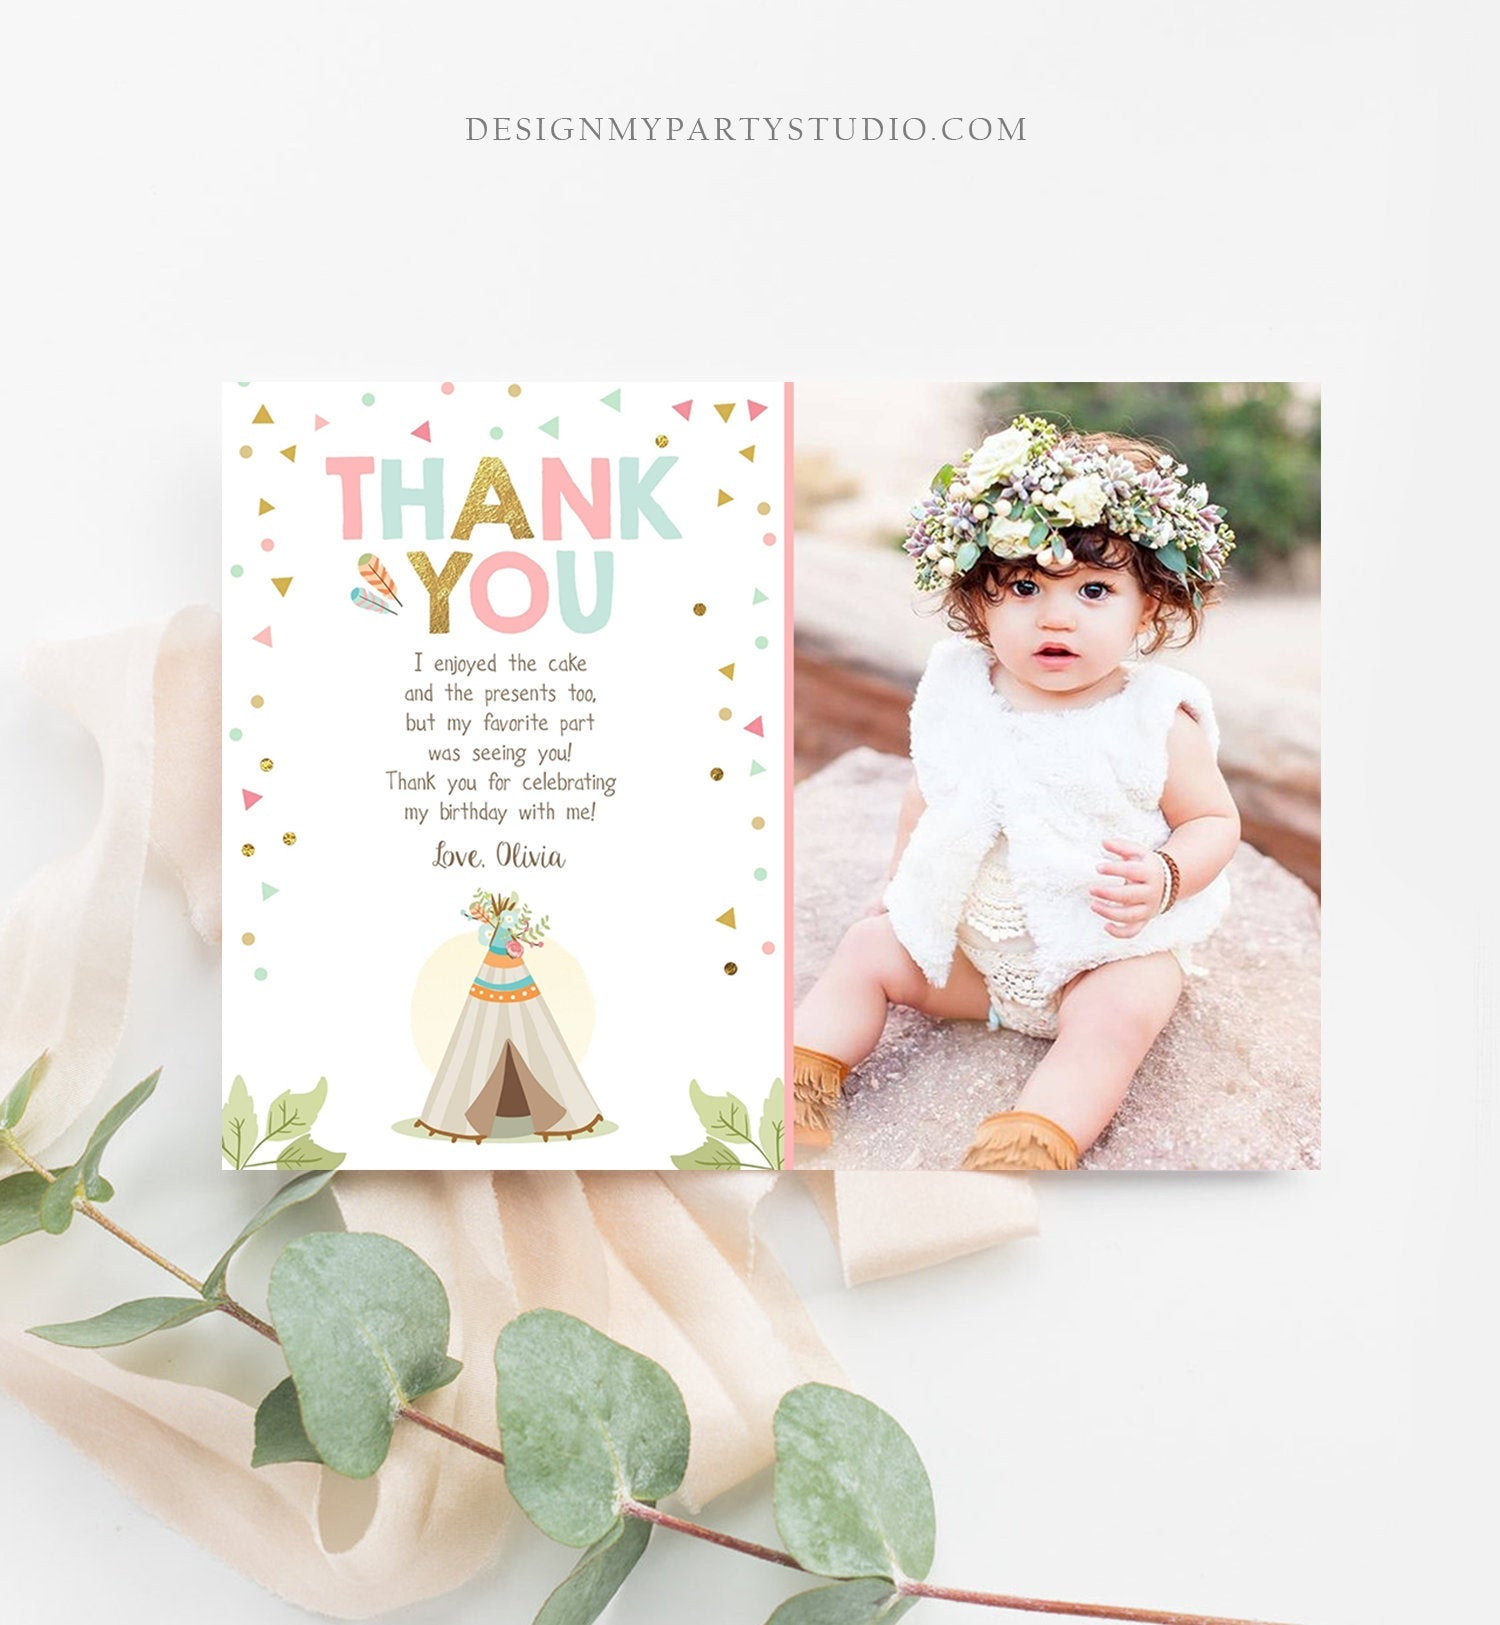 Editable Teepee Thank You Card Wild One Thank you Note Wild Three Birthday Tribal Feathers Pink Gold Girl Printable Template Corjl 0092